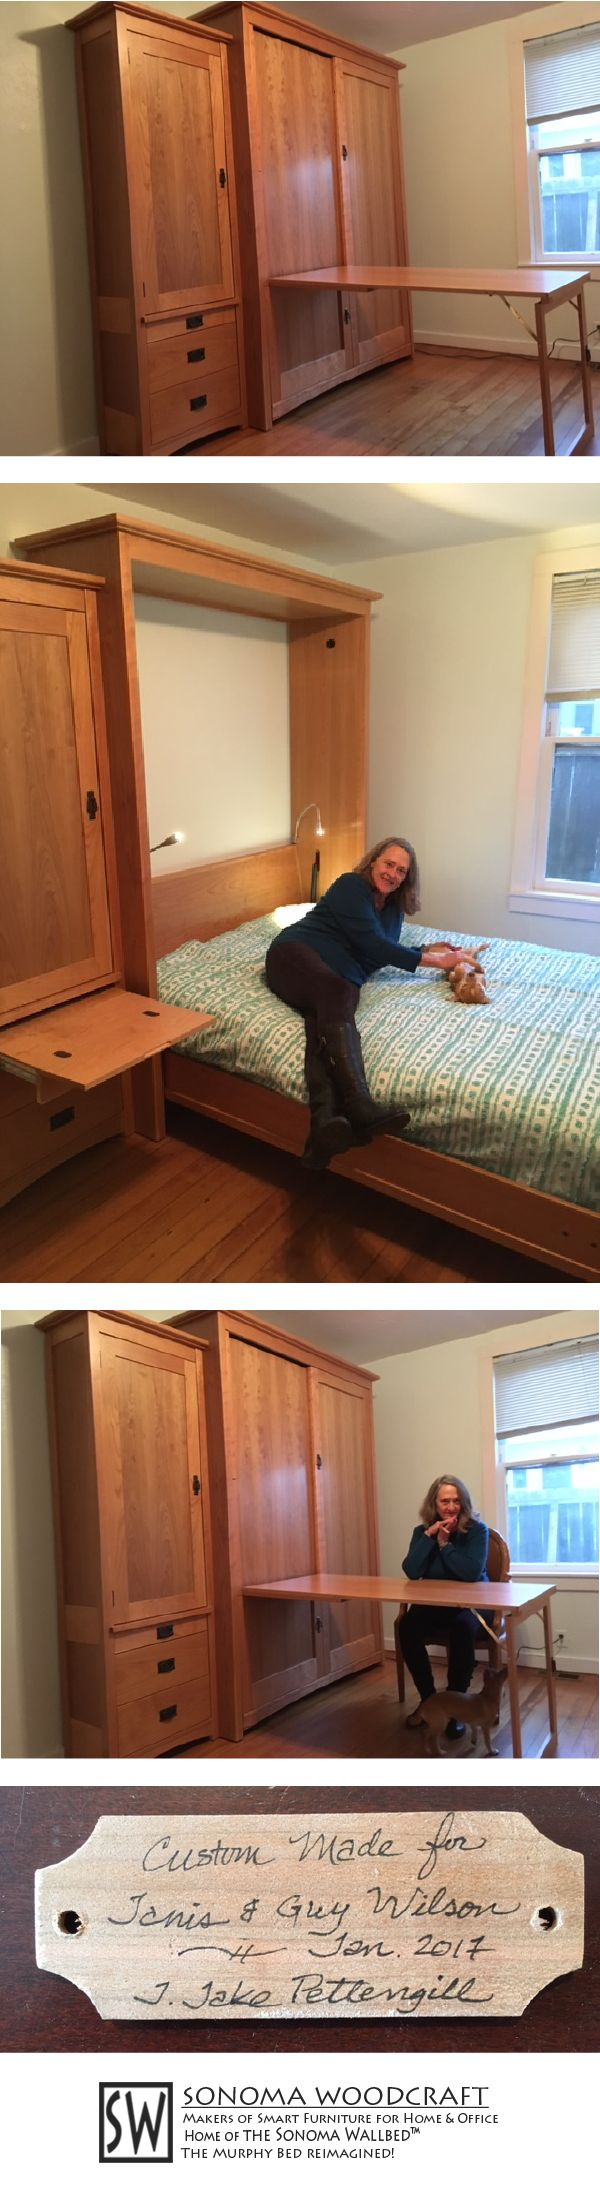 Janis and Guy transformed a room in their home with this Sonoma Wallbed system. Cabinet doubles as a table when the bed is closed. Open it's a comfy queen with nightstand and flexible LED reading lamps. It's in the Craftsman style with cherry wood.